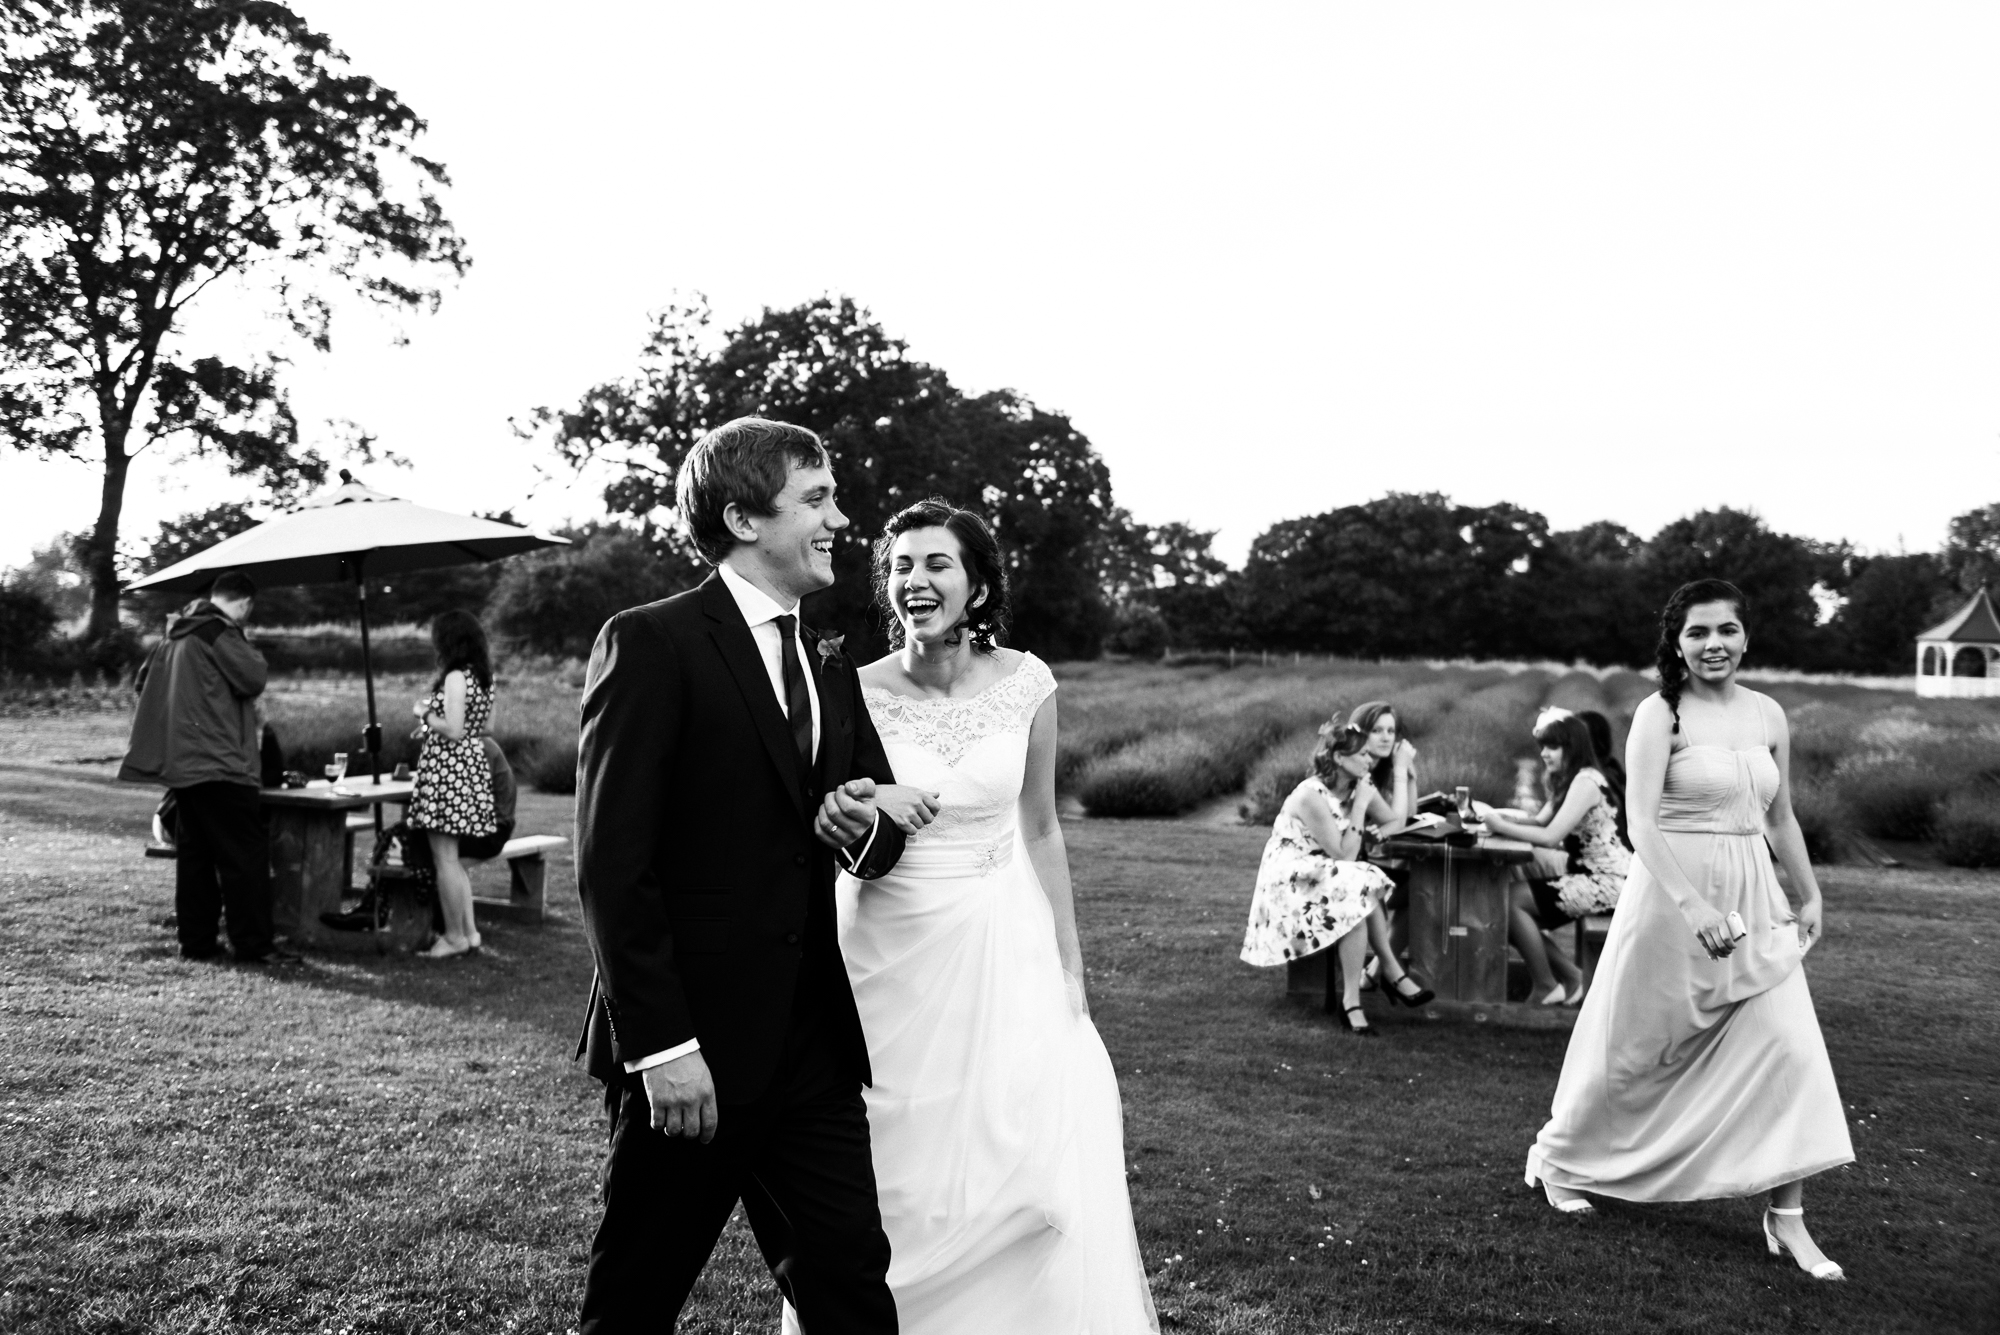 Rustic Country Wedding - The Swettenham Arms, Cheshire Lavender Field - Ceilidh - Jenny Harper Photography-71.jpg